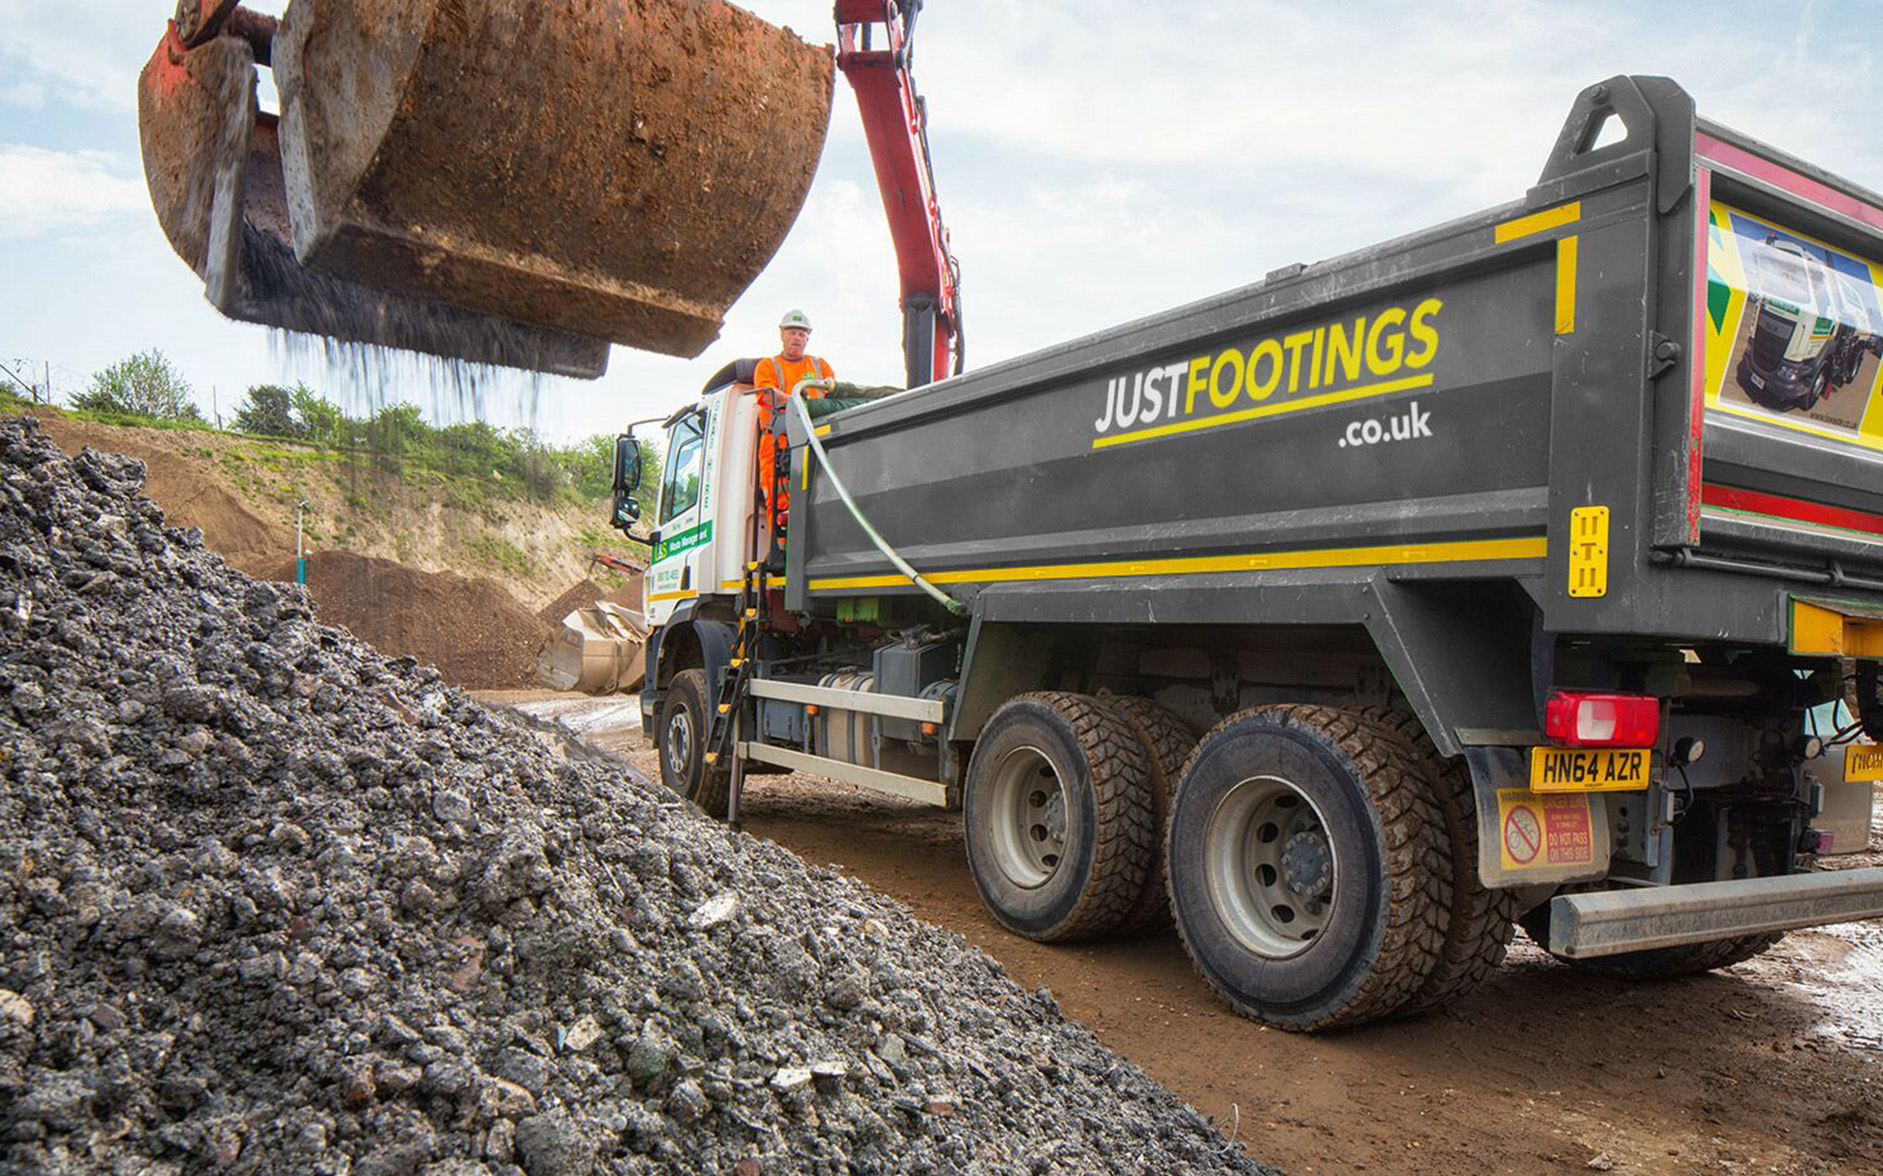 Just Footings - Groundworks site clearance waste management - Portsmouth Southampton Hampshire Fareham